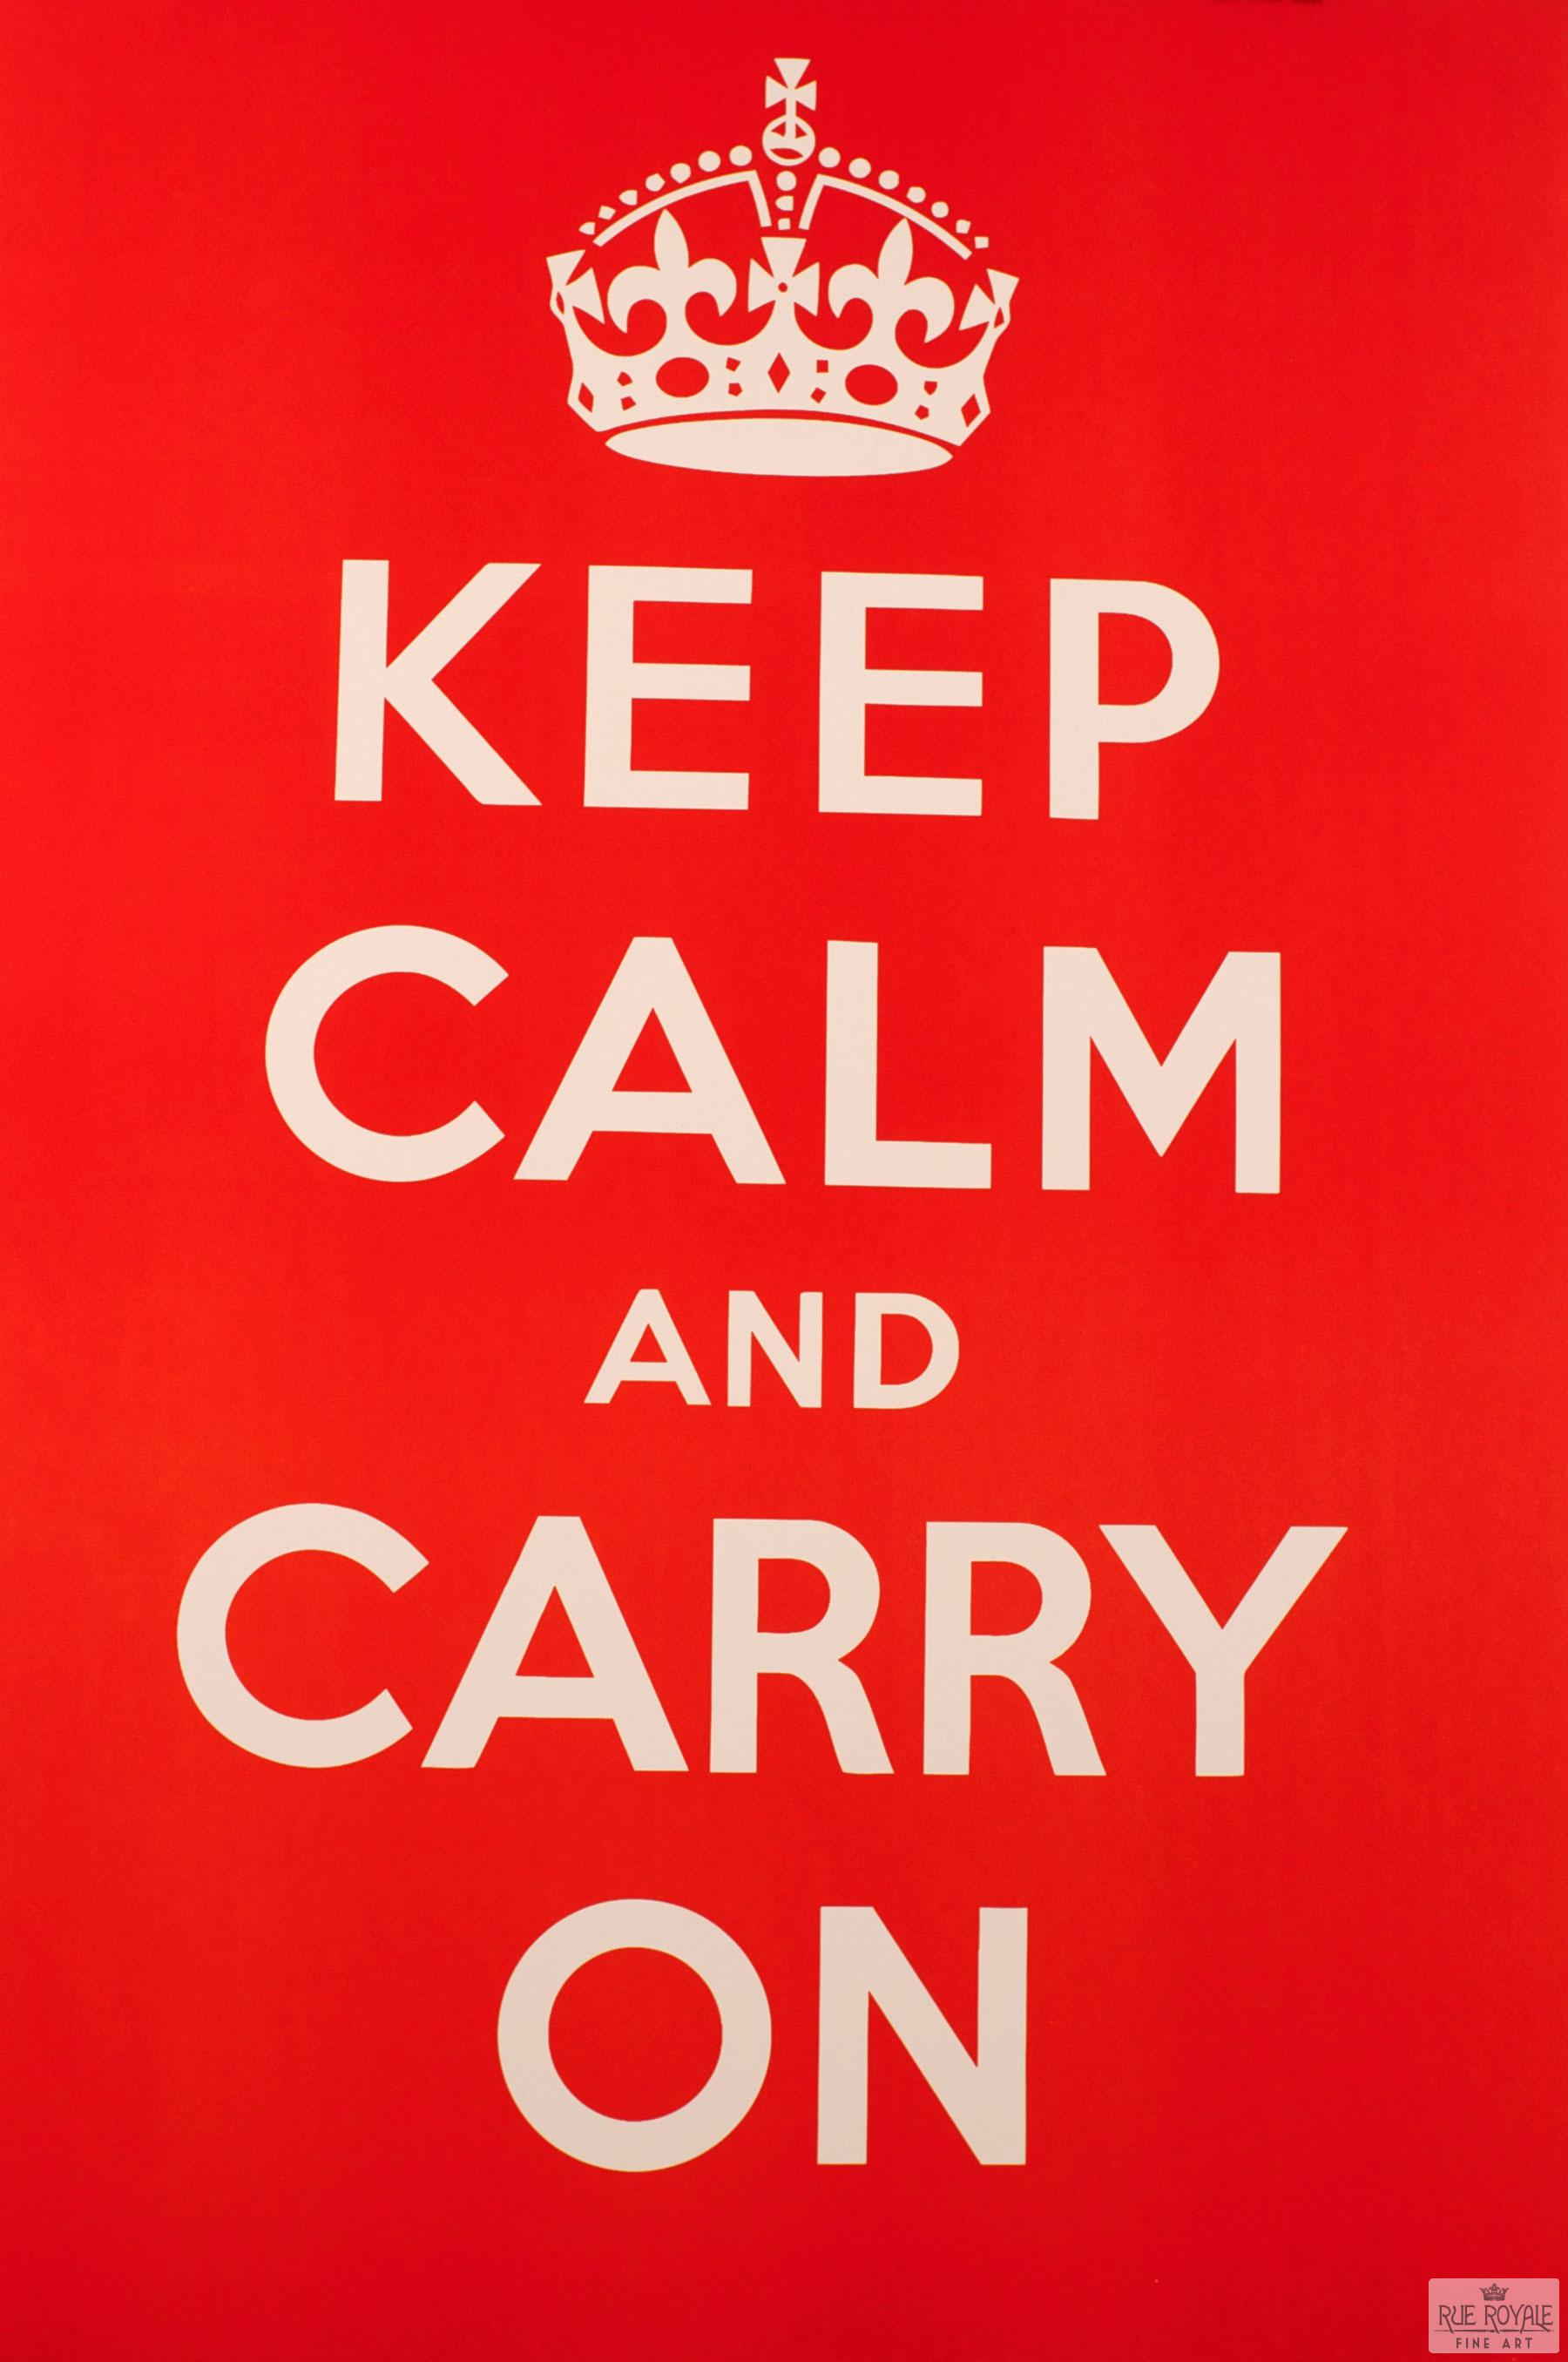 fine art lithograph keep calm carry on